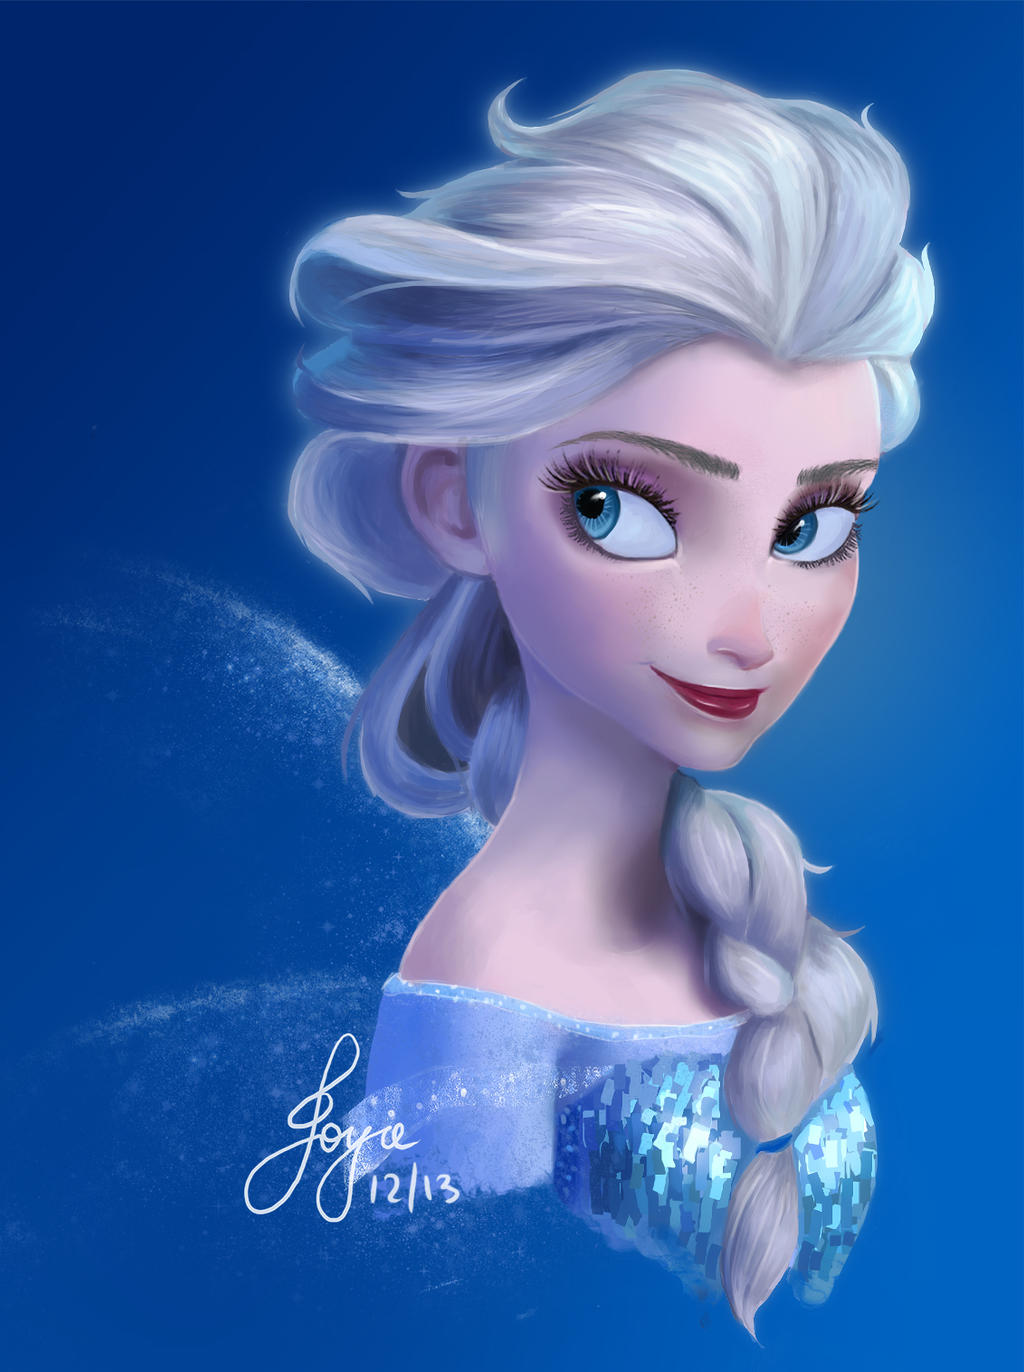 Elsa the Snow Queen by couph